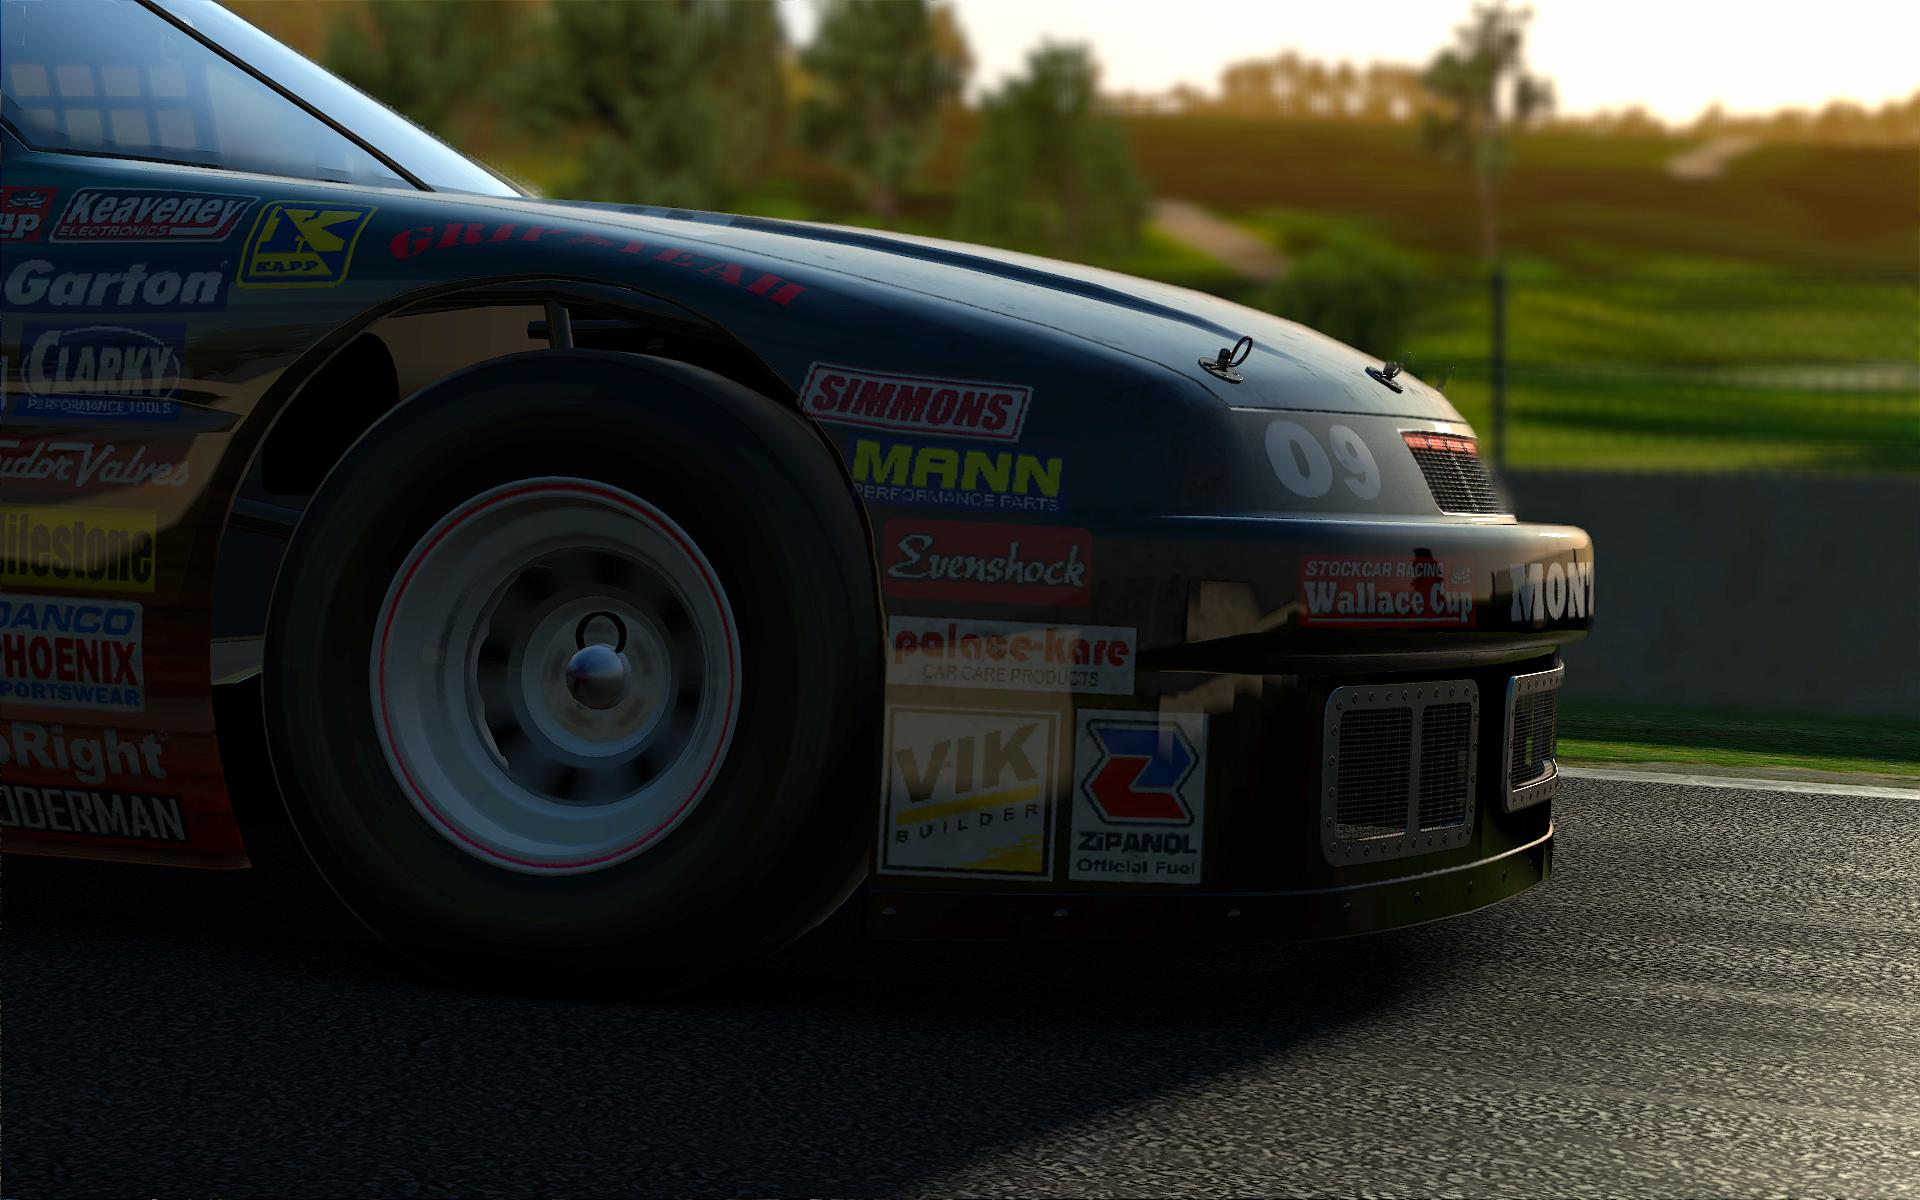 12' May 11 Project Cars Screen Shot 28